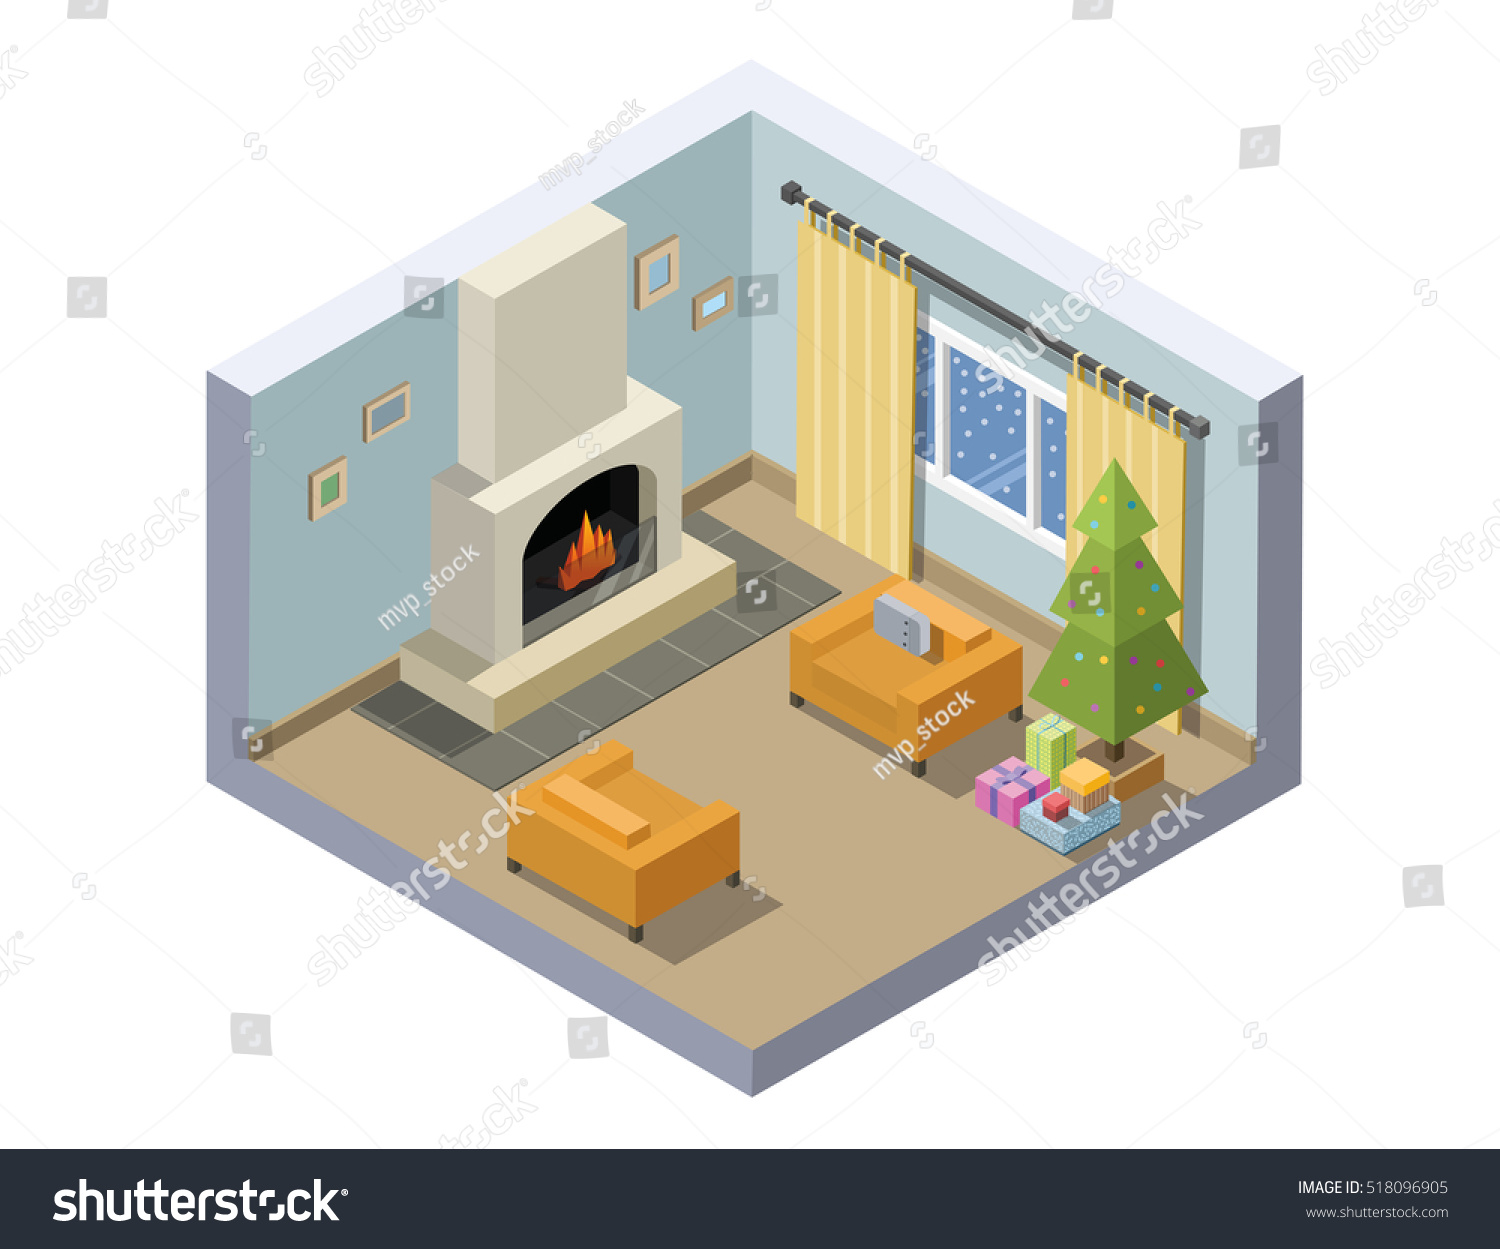 Vector Isometric Illustration Of Christmas Eve Room, Set Of Living Room  Furniture, Christmas Decoration